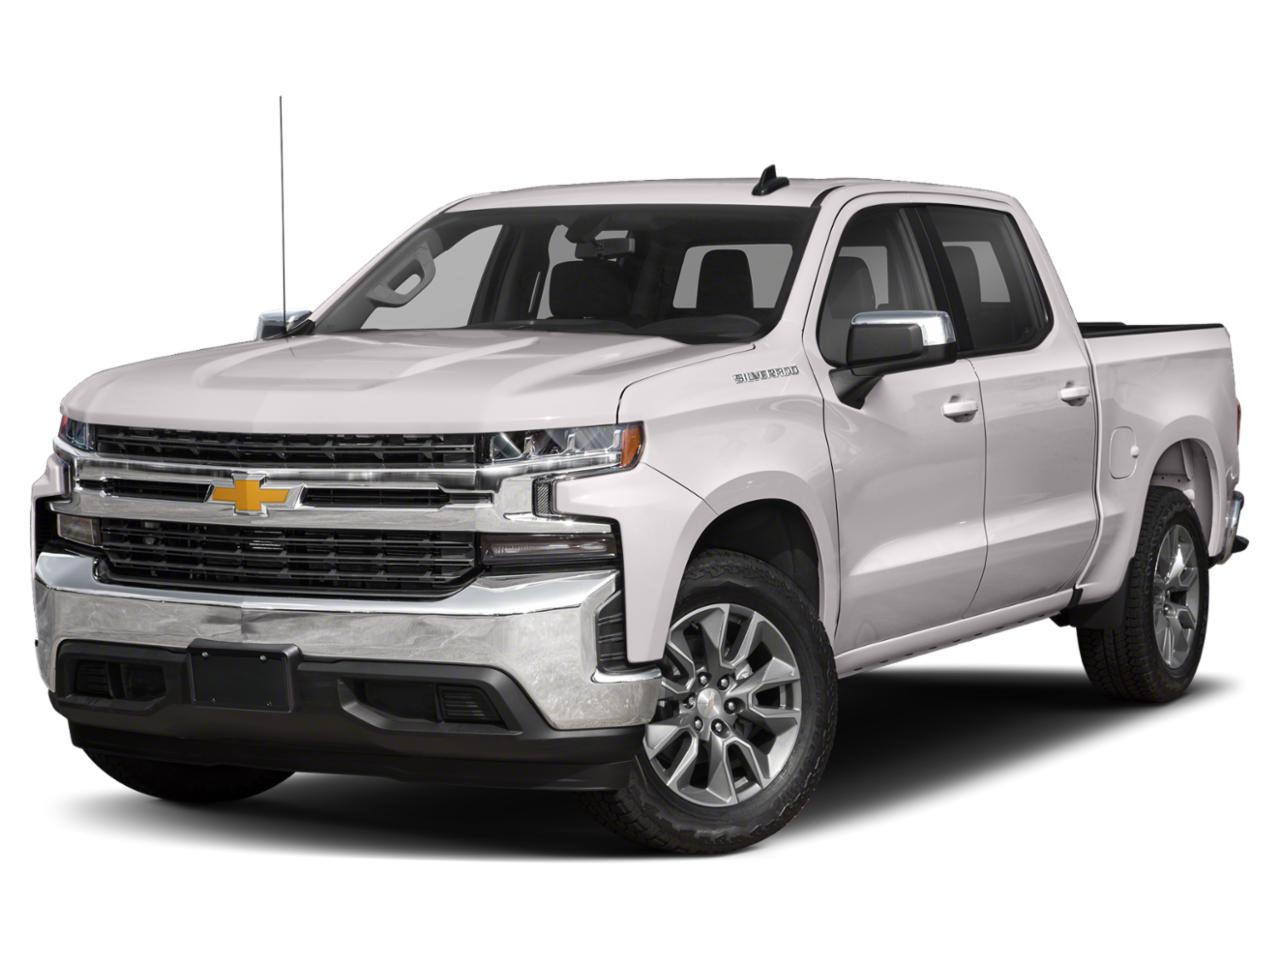 2021 Chevrolet Silverado 1500 Vehicle Photo in Washington, NJ 07882